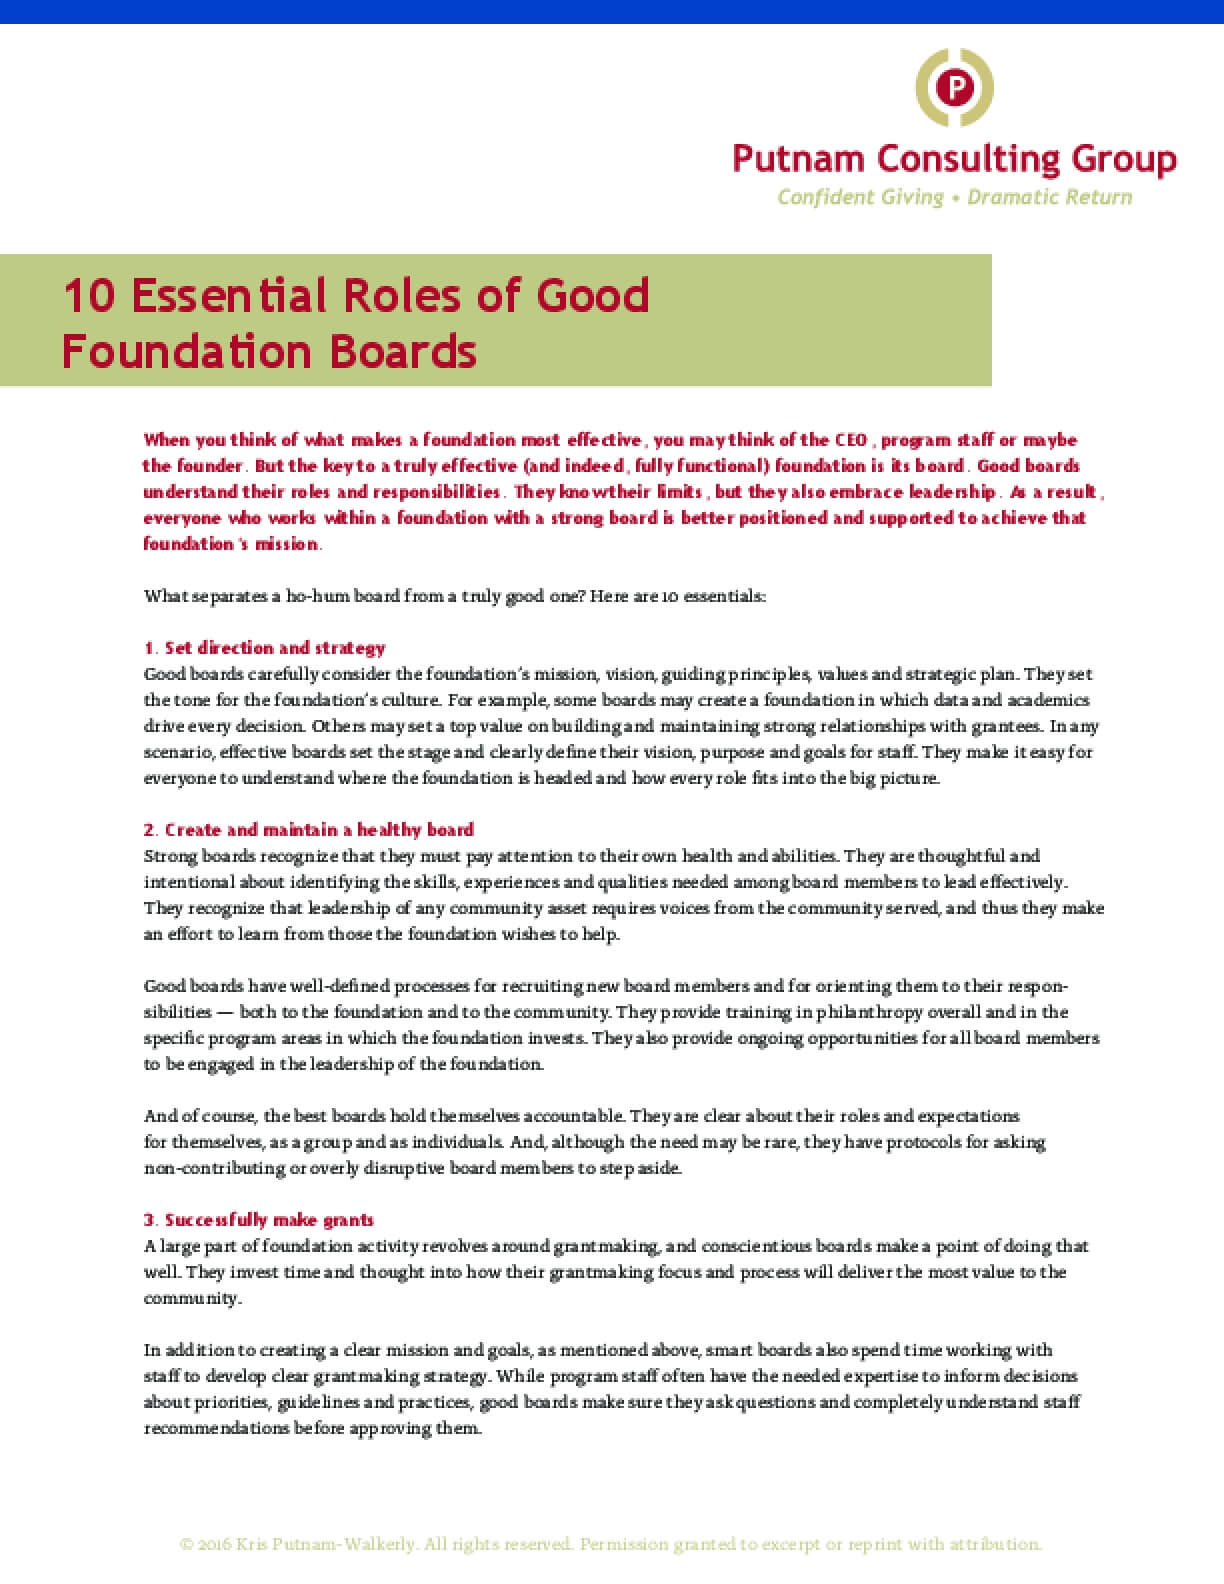 10 Essential Roles of Good Foundation Boards